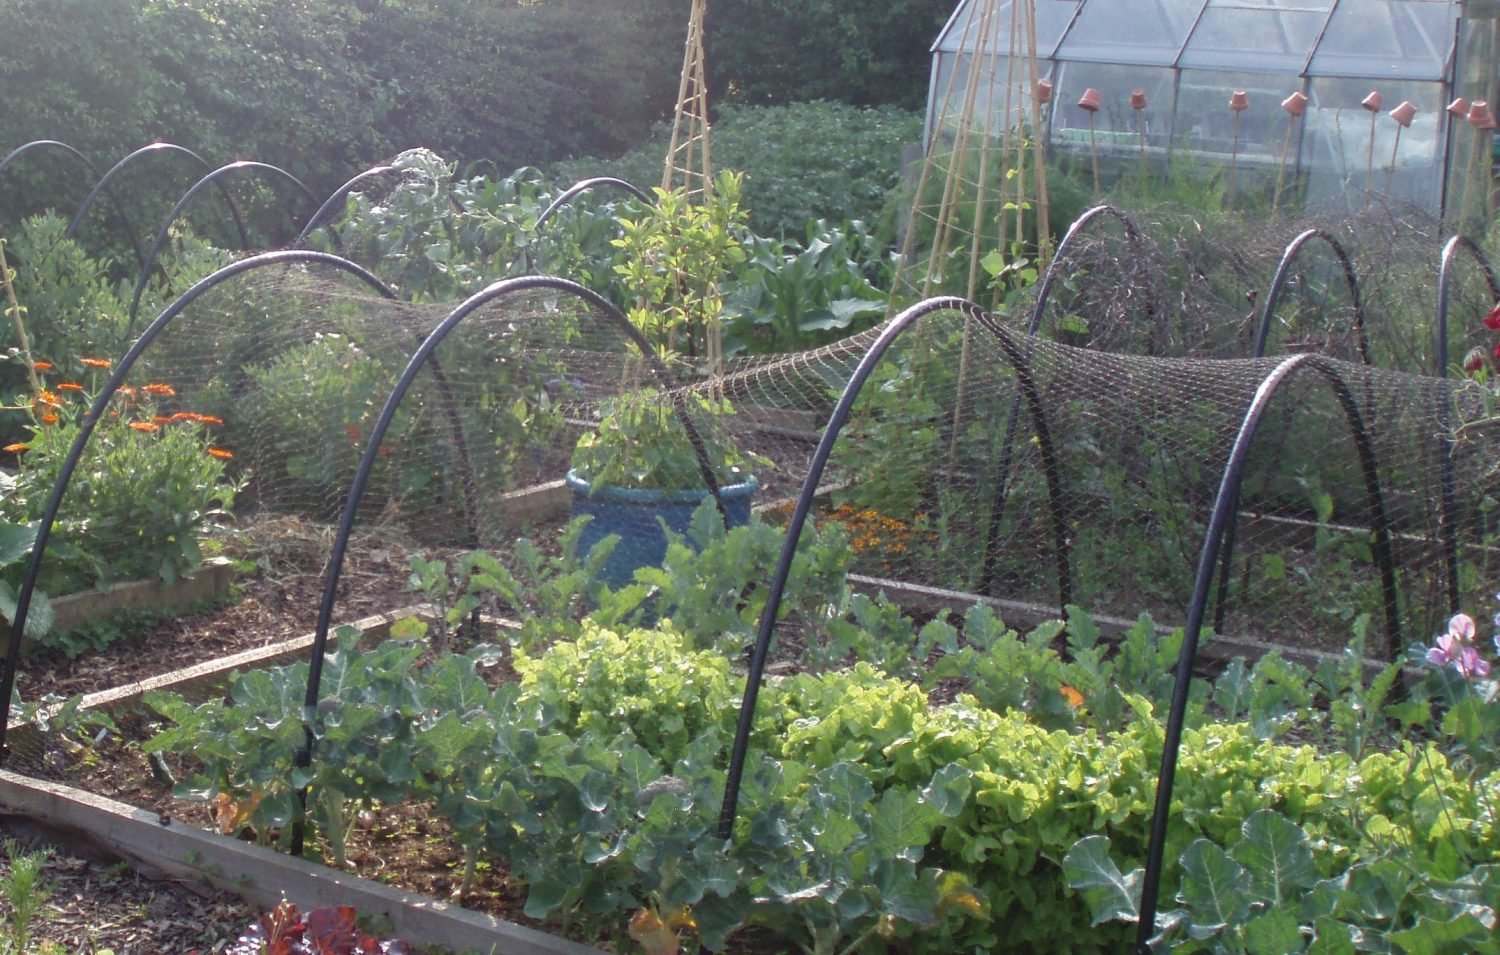 Use netting to protect crops from pests